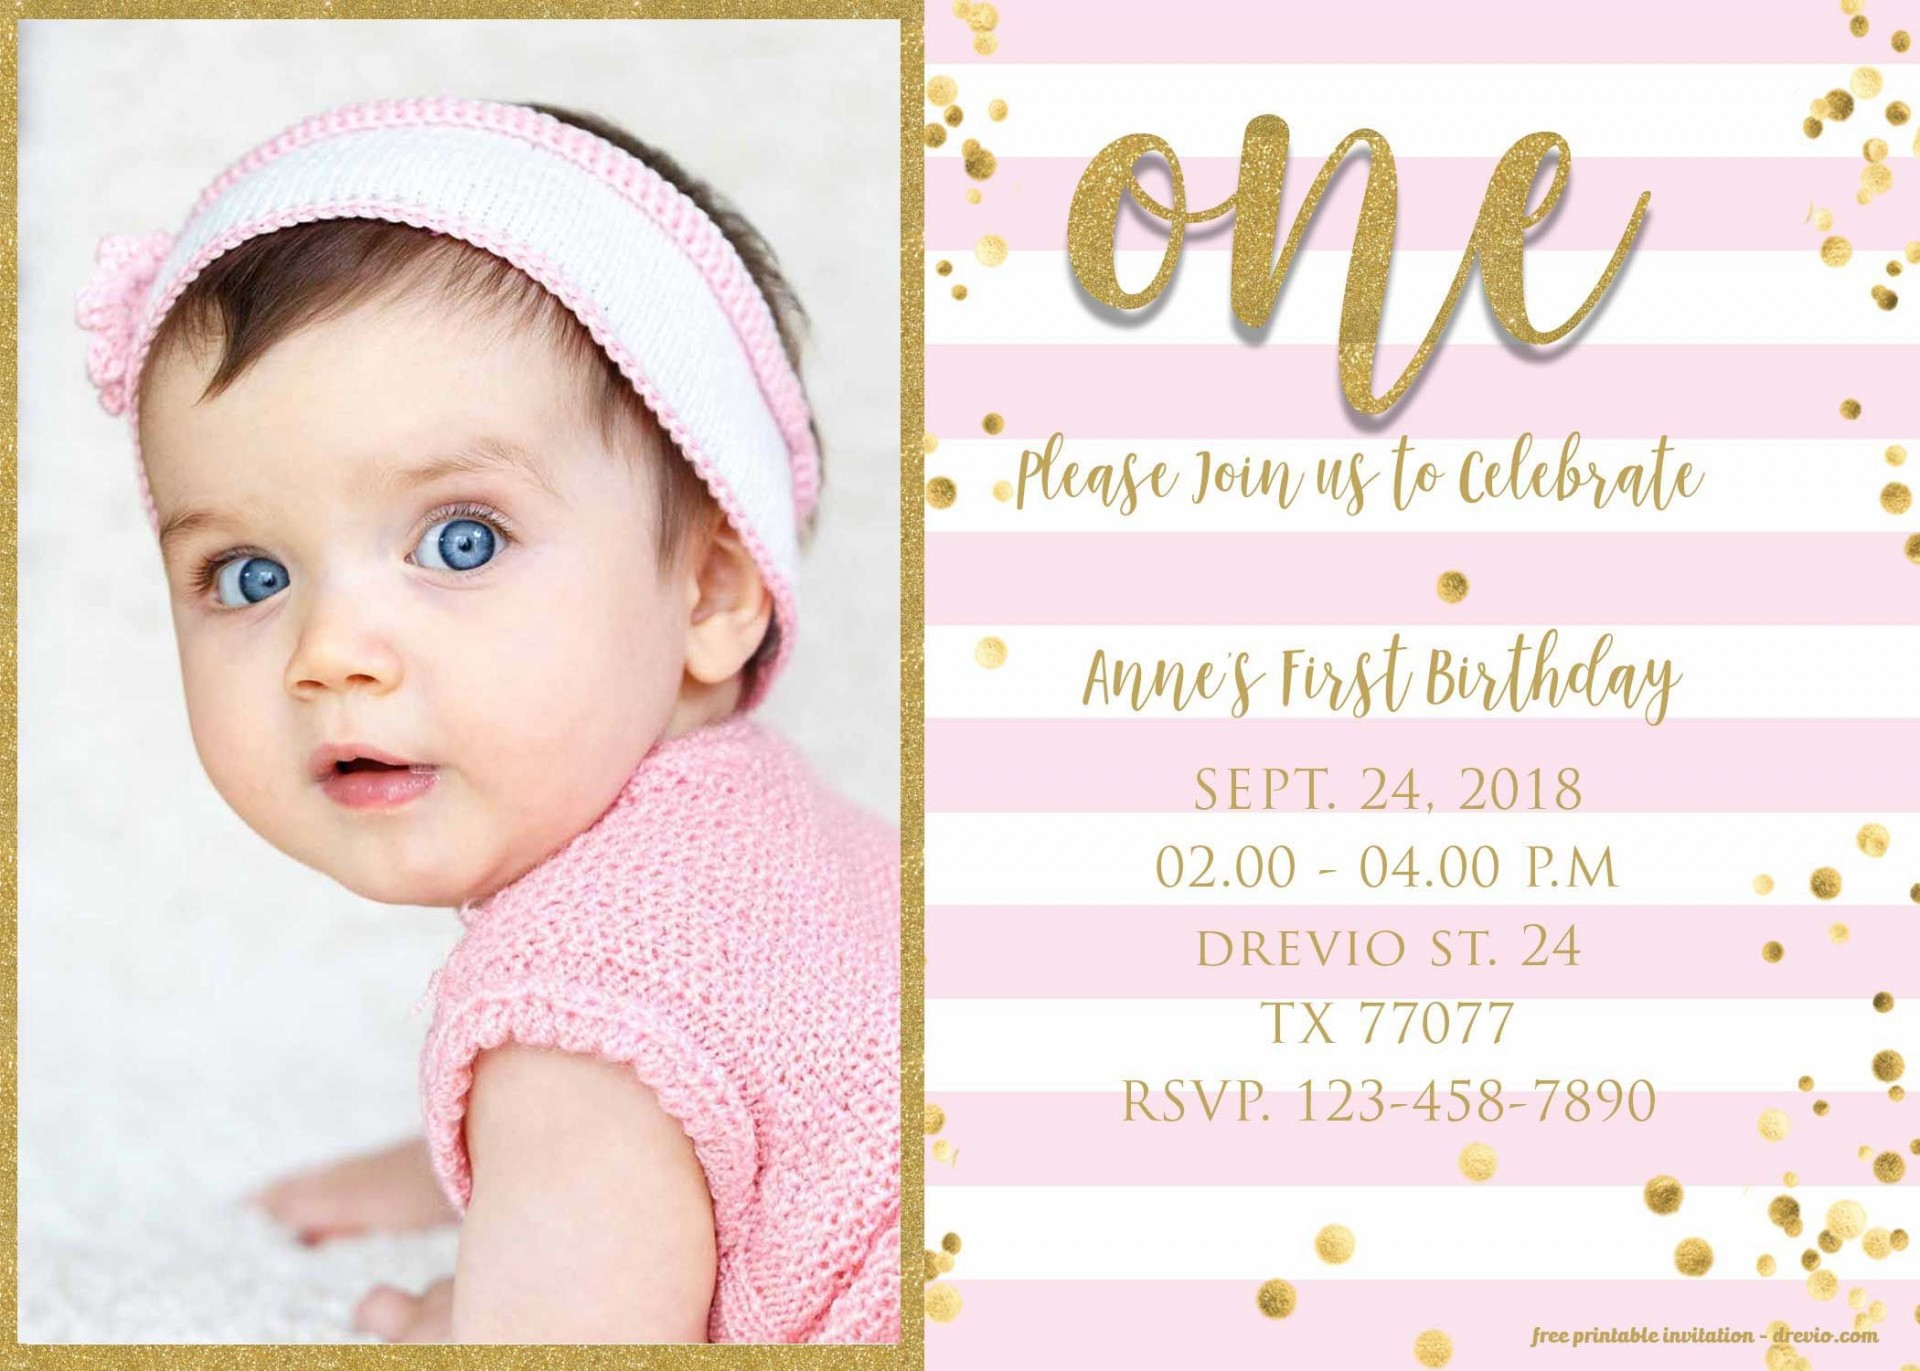 000 Magnificent Birthday Invitation Template Free Download Example  Editable Video Twin First Downloadable 18th Printable1920